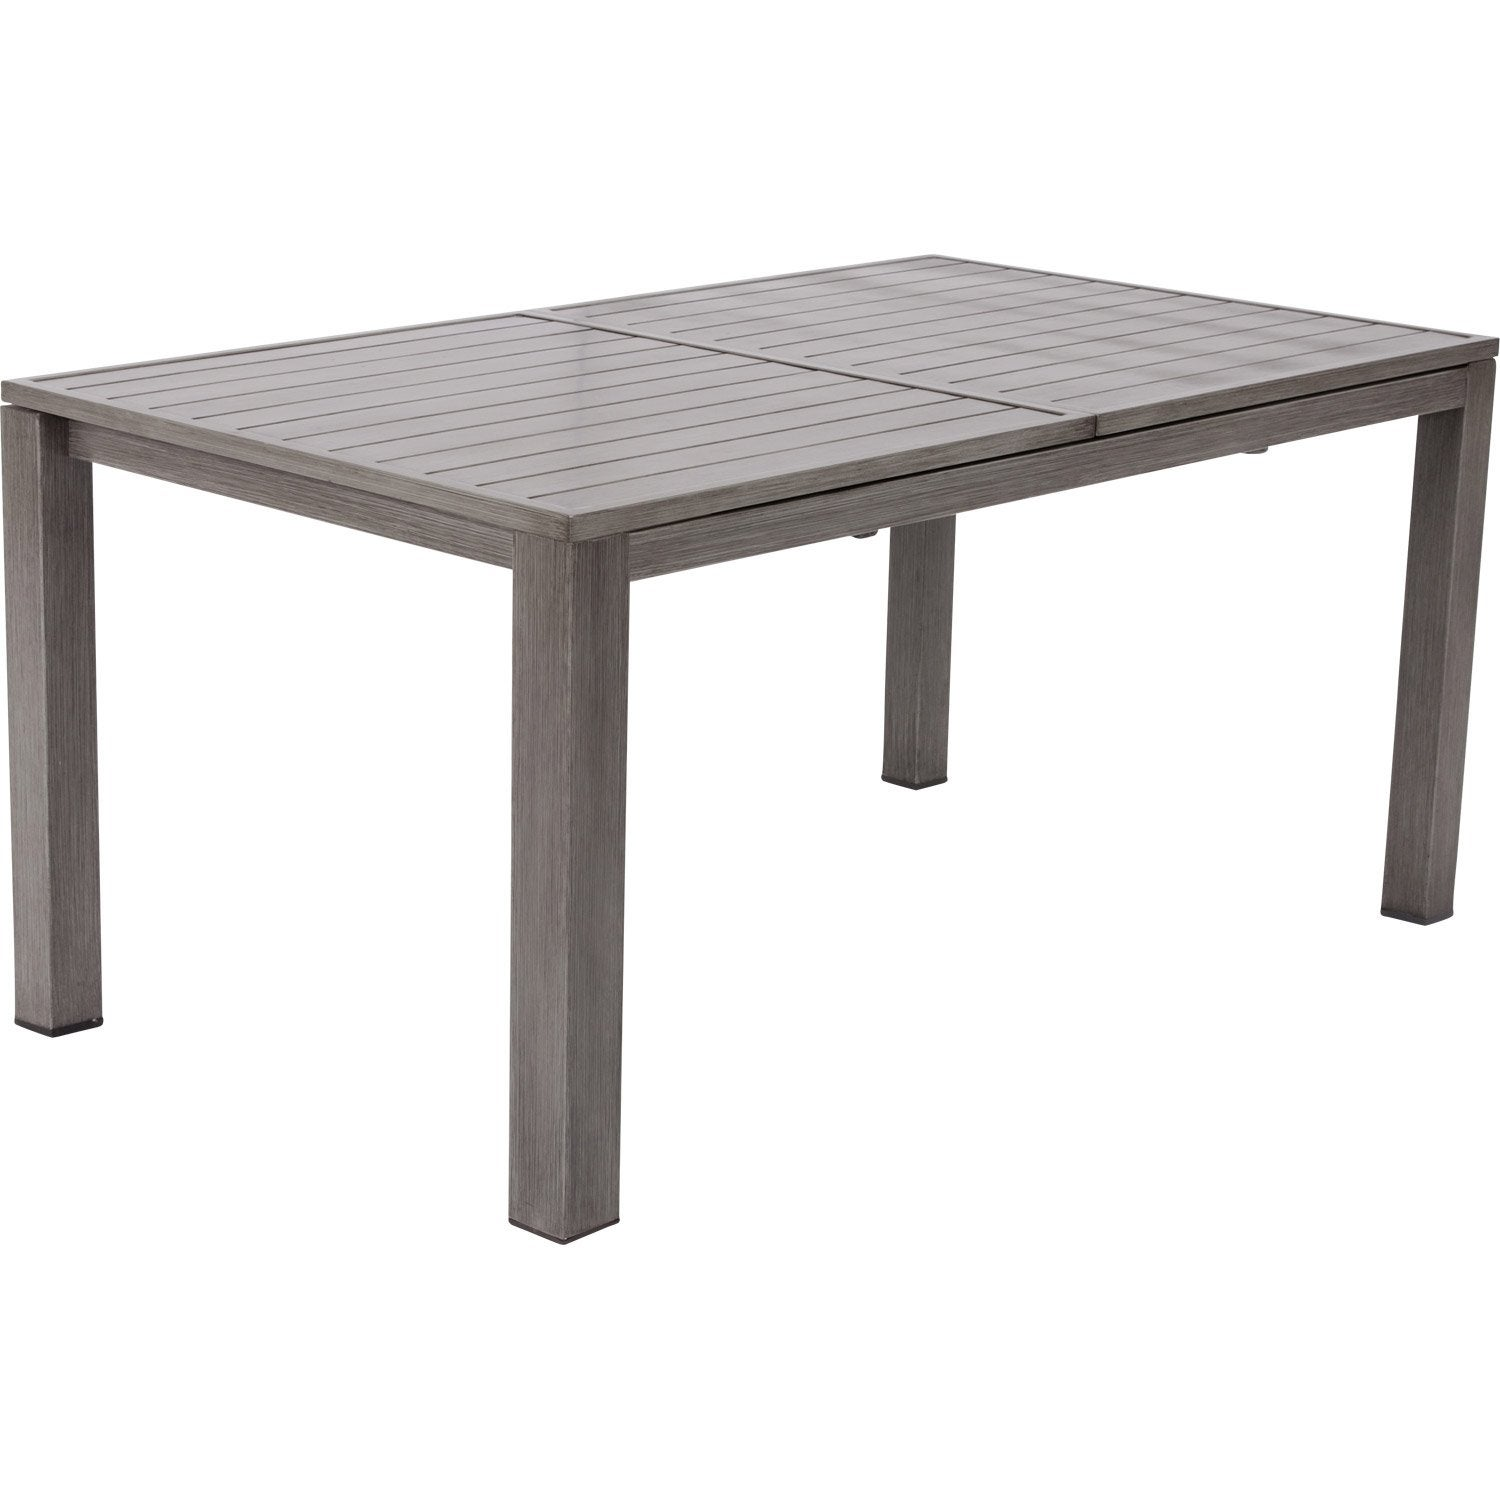 table de jardin naterial antibes rectangulaire gris look. Black Bedroom Furniture Sets. Home Design Ideas